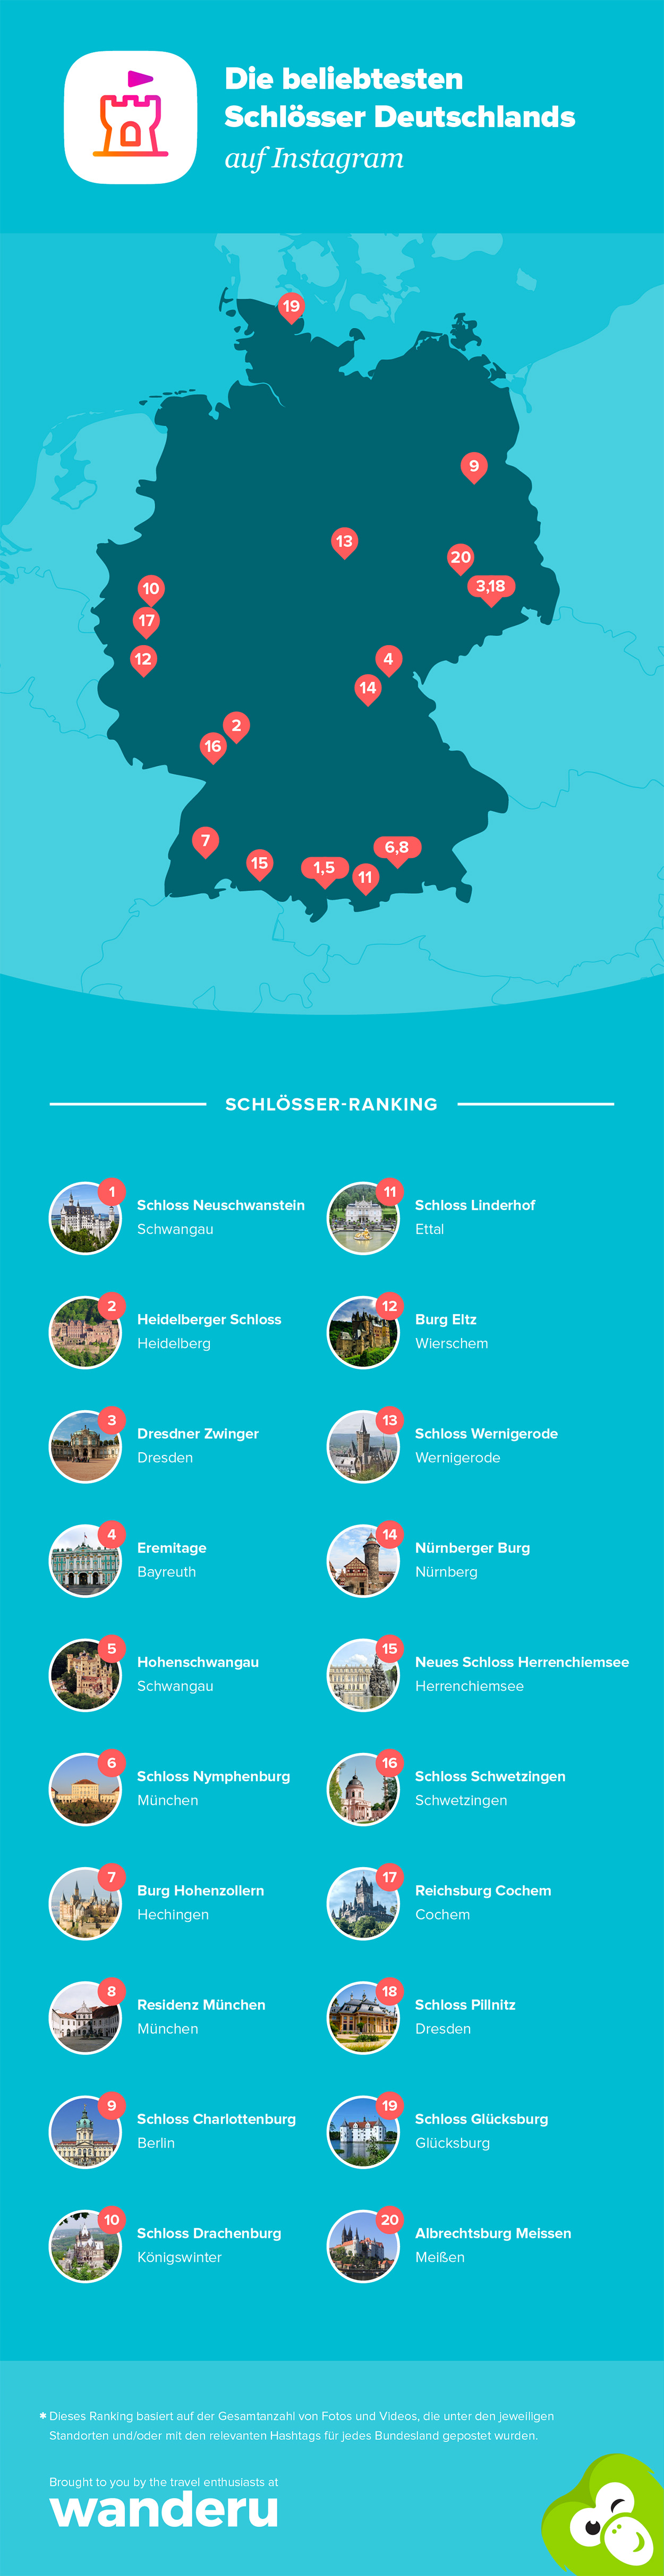 Ranking of the most instagrammed castles in Germany.